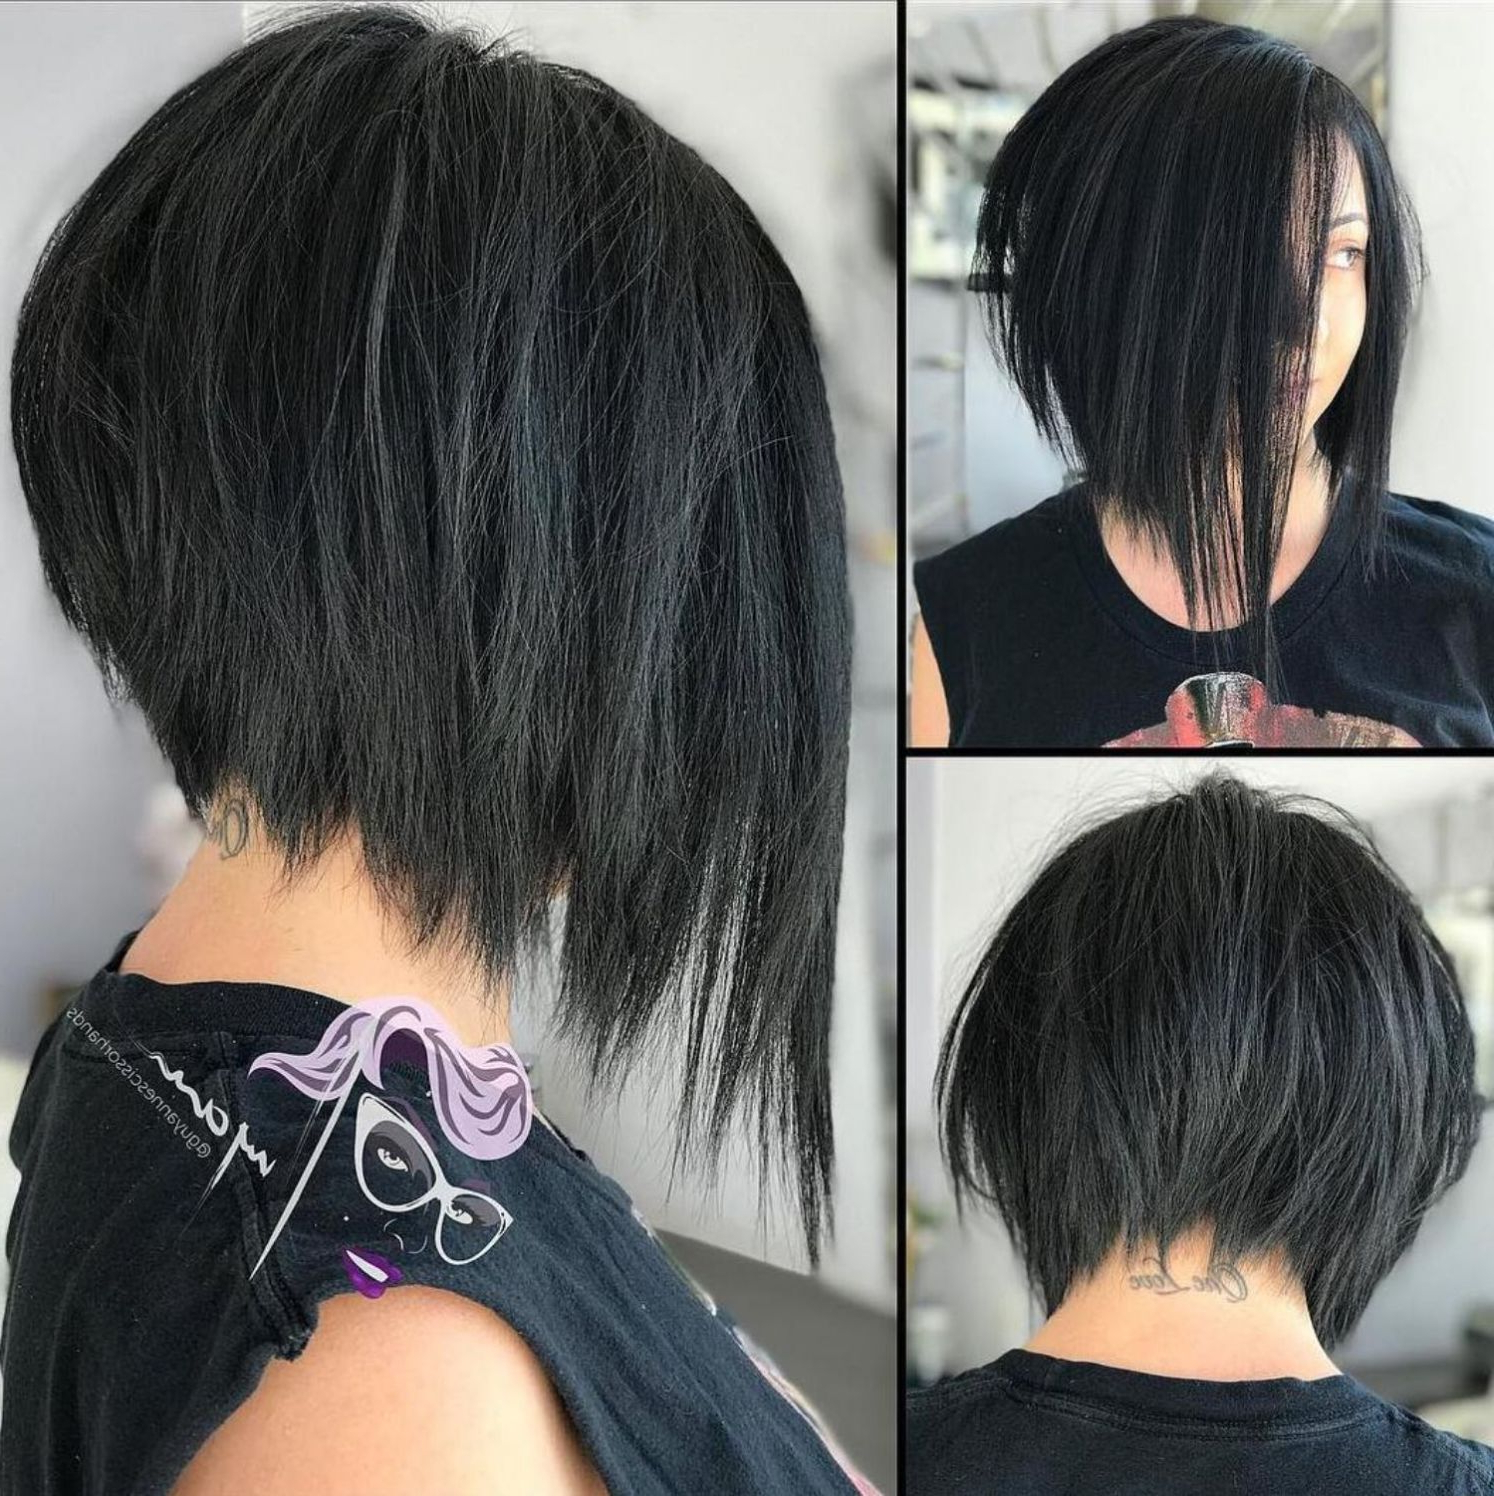 Well Known Razored Gray Bob Hairstyles With Bangs In 50 Trendy Inverted Bob Haircuts In (View 3 of 20)